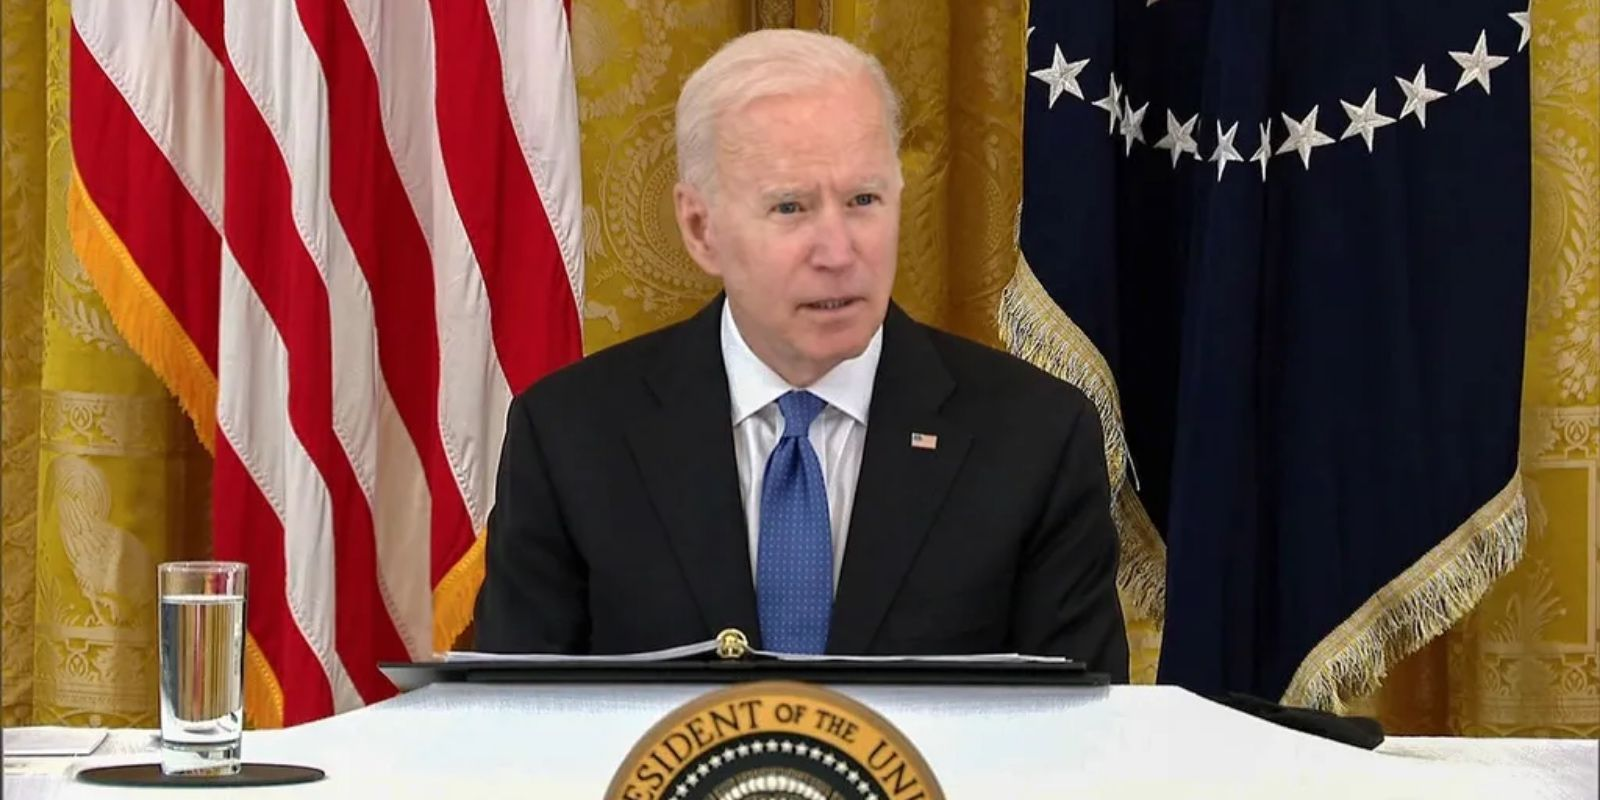 BREAKING: Biden to announce 3-way pact on intelligence sharing with UK, Australia